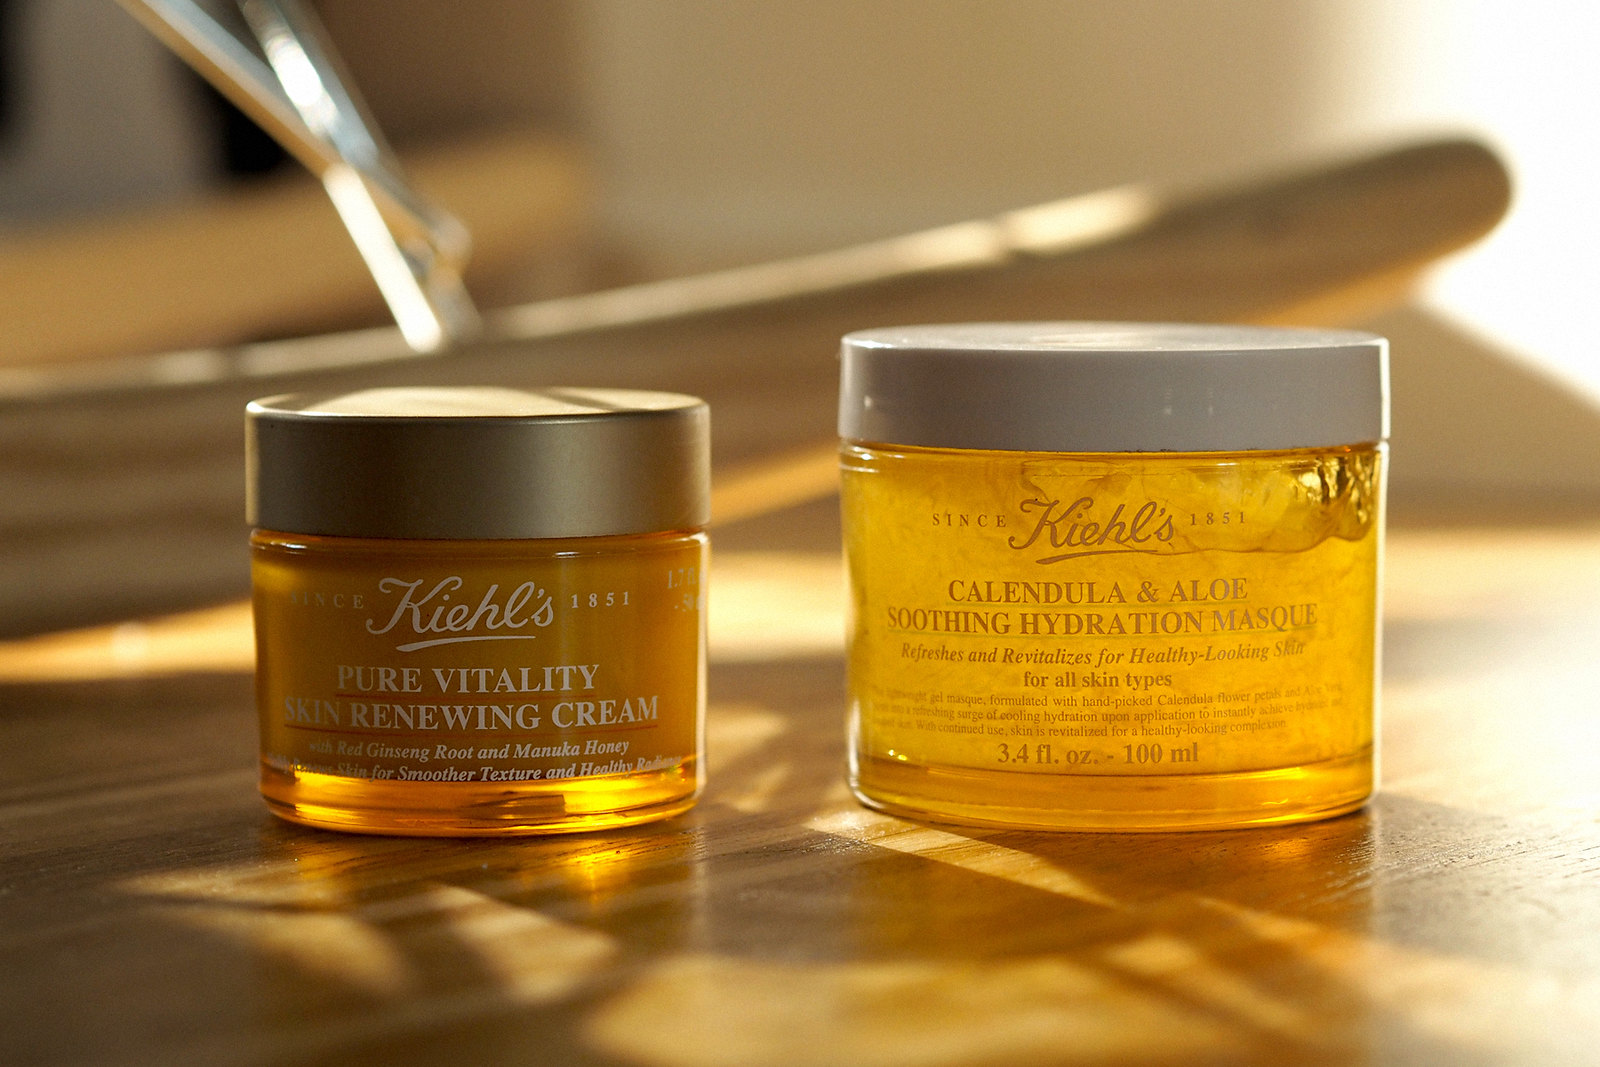 kiehl's morning routine beauty beautyblogger golden light amber beautiful wood calendula cleansing moisturizing mask skincare apothecary video blogger vlogger cats & dogs beautblog ricarda schernus düsseldorf max bechmann fotografie film nrw blog 4